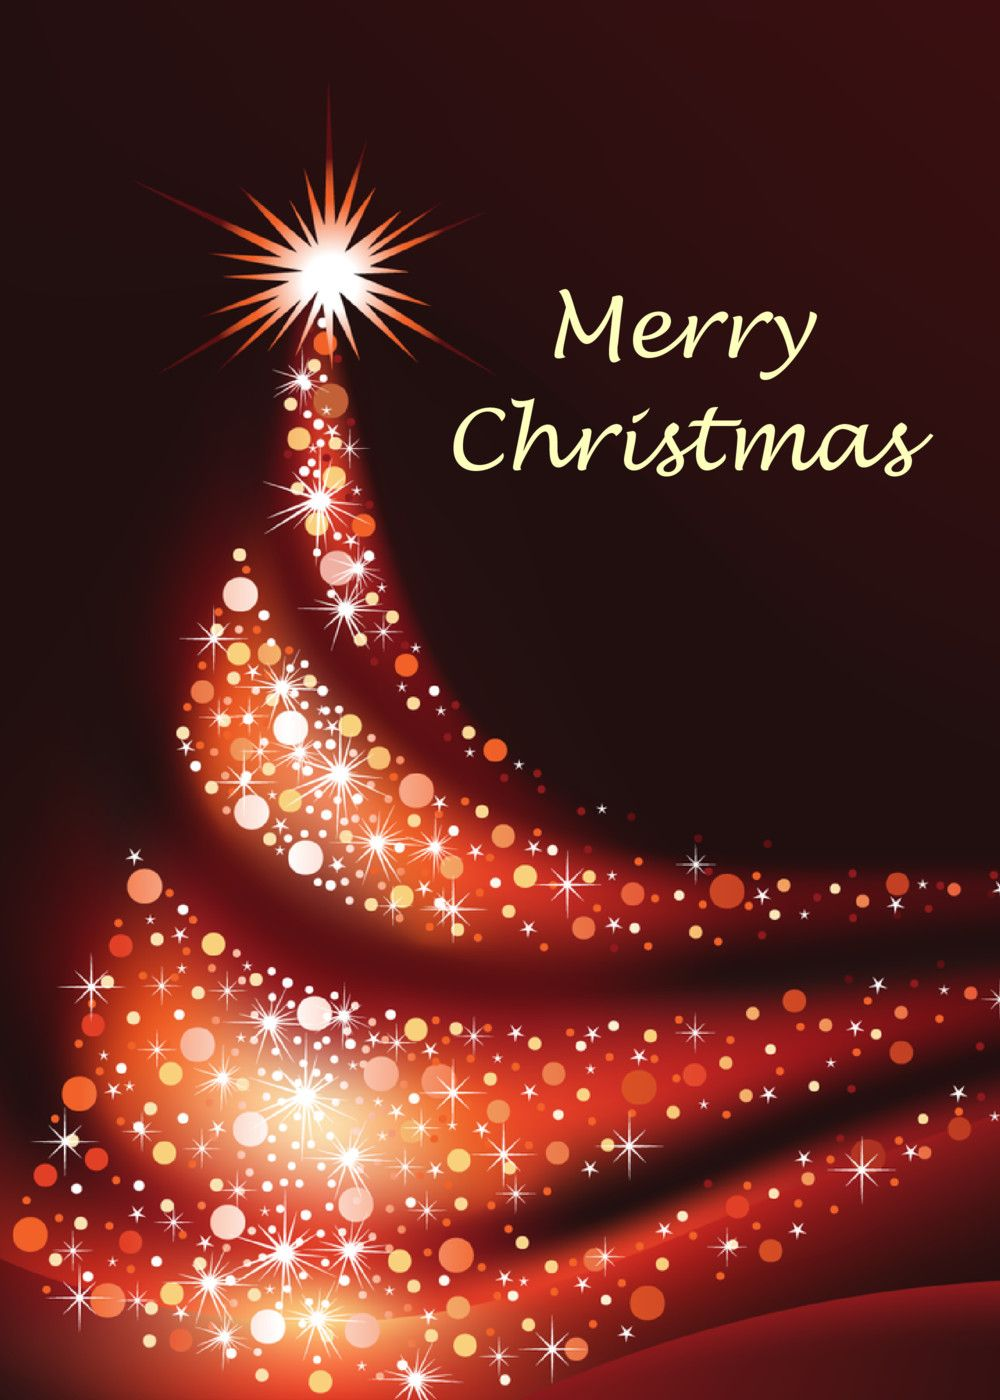 Click To Send This Card Quotes Of Christmas Pinterest Online